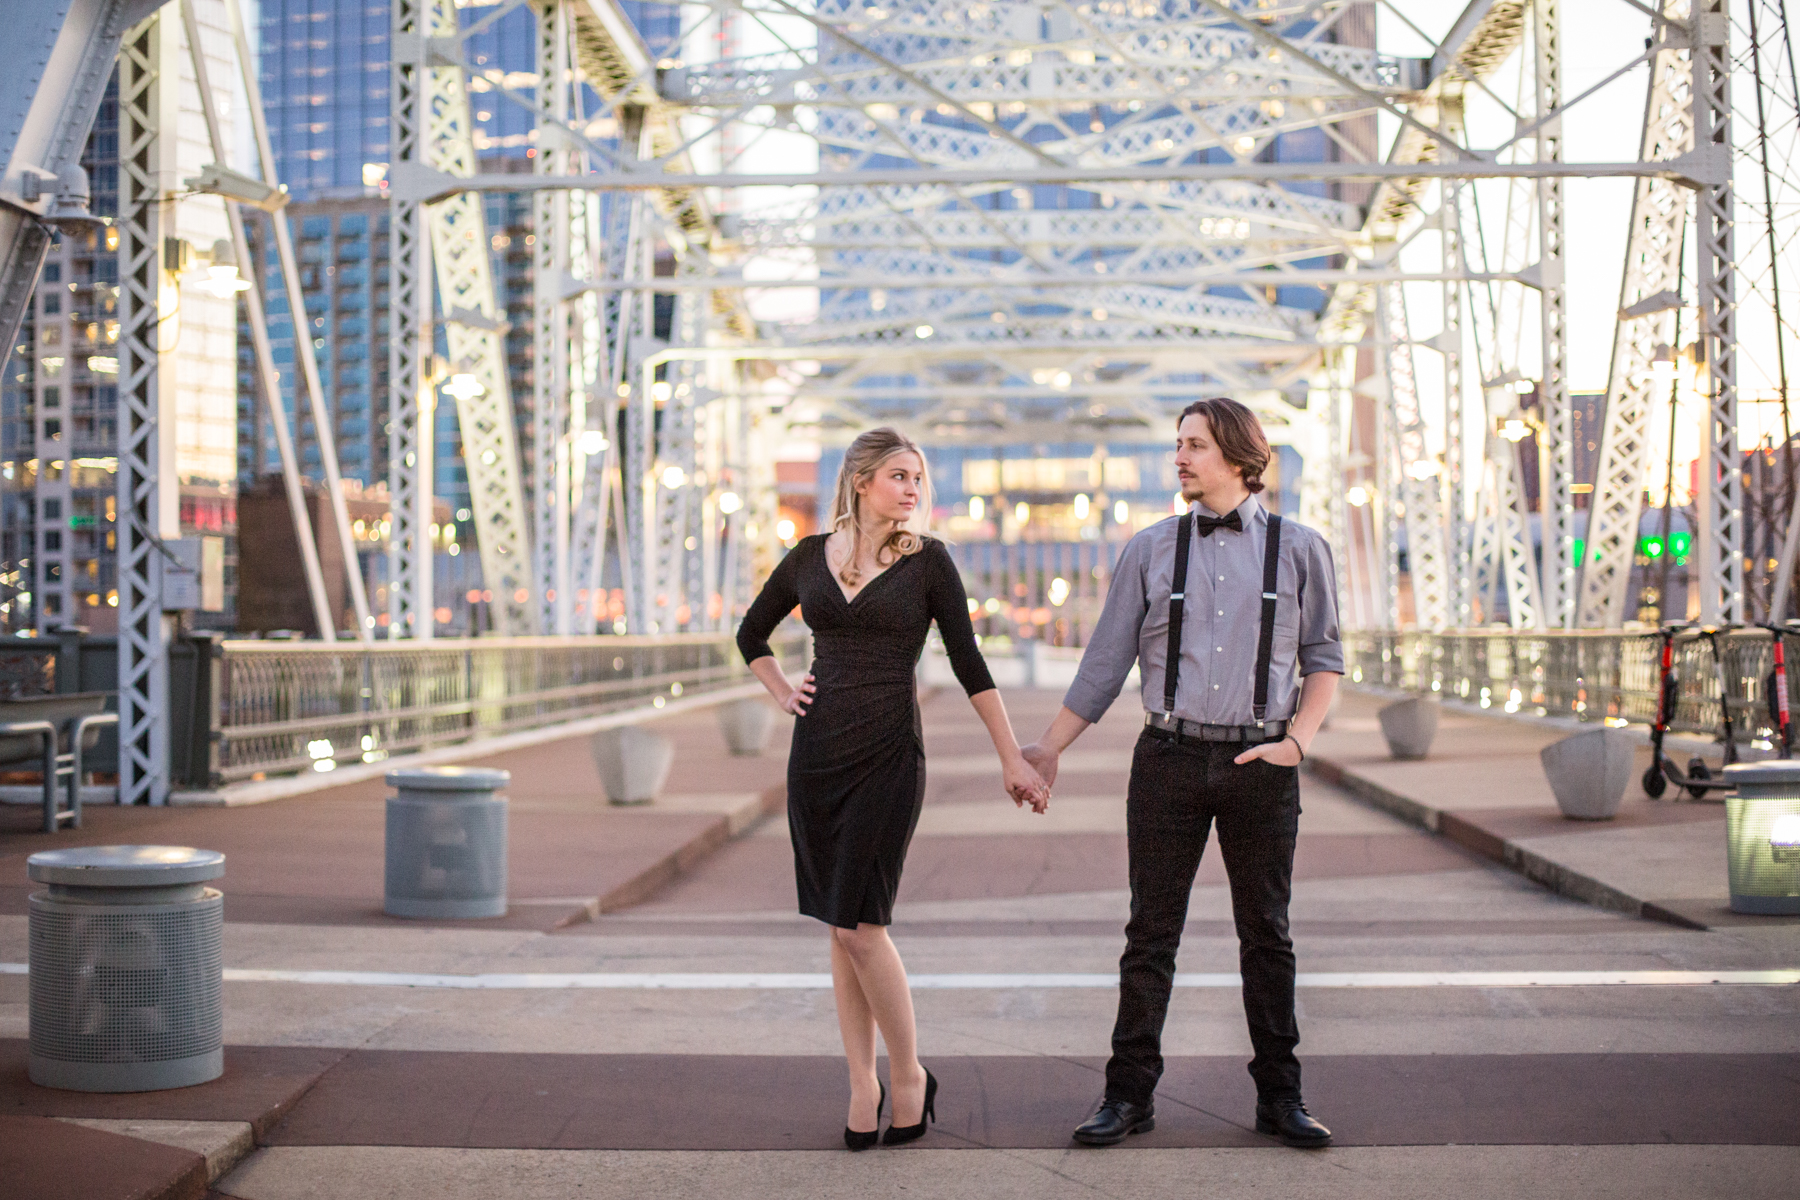 nashville-pedestrian-bridge-engagement-photos.jpg